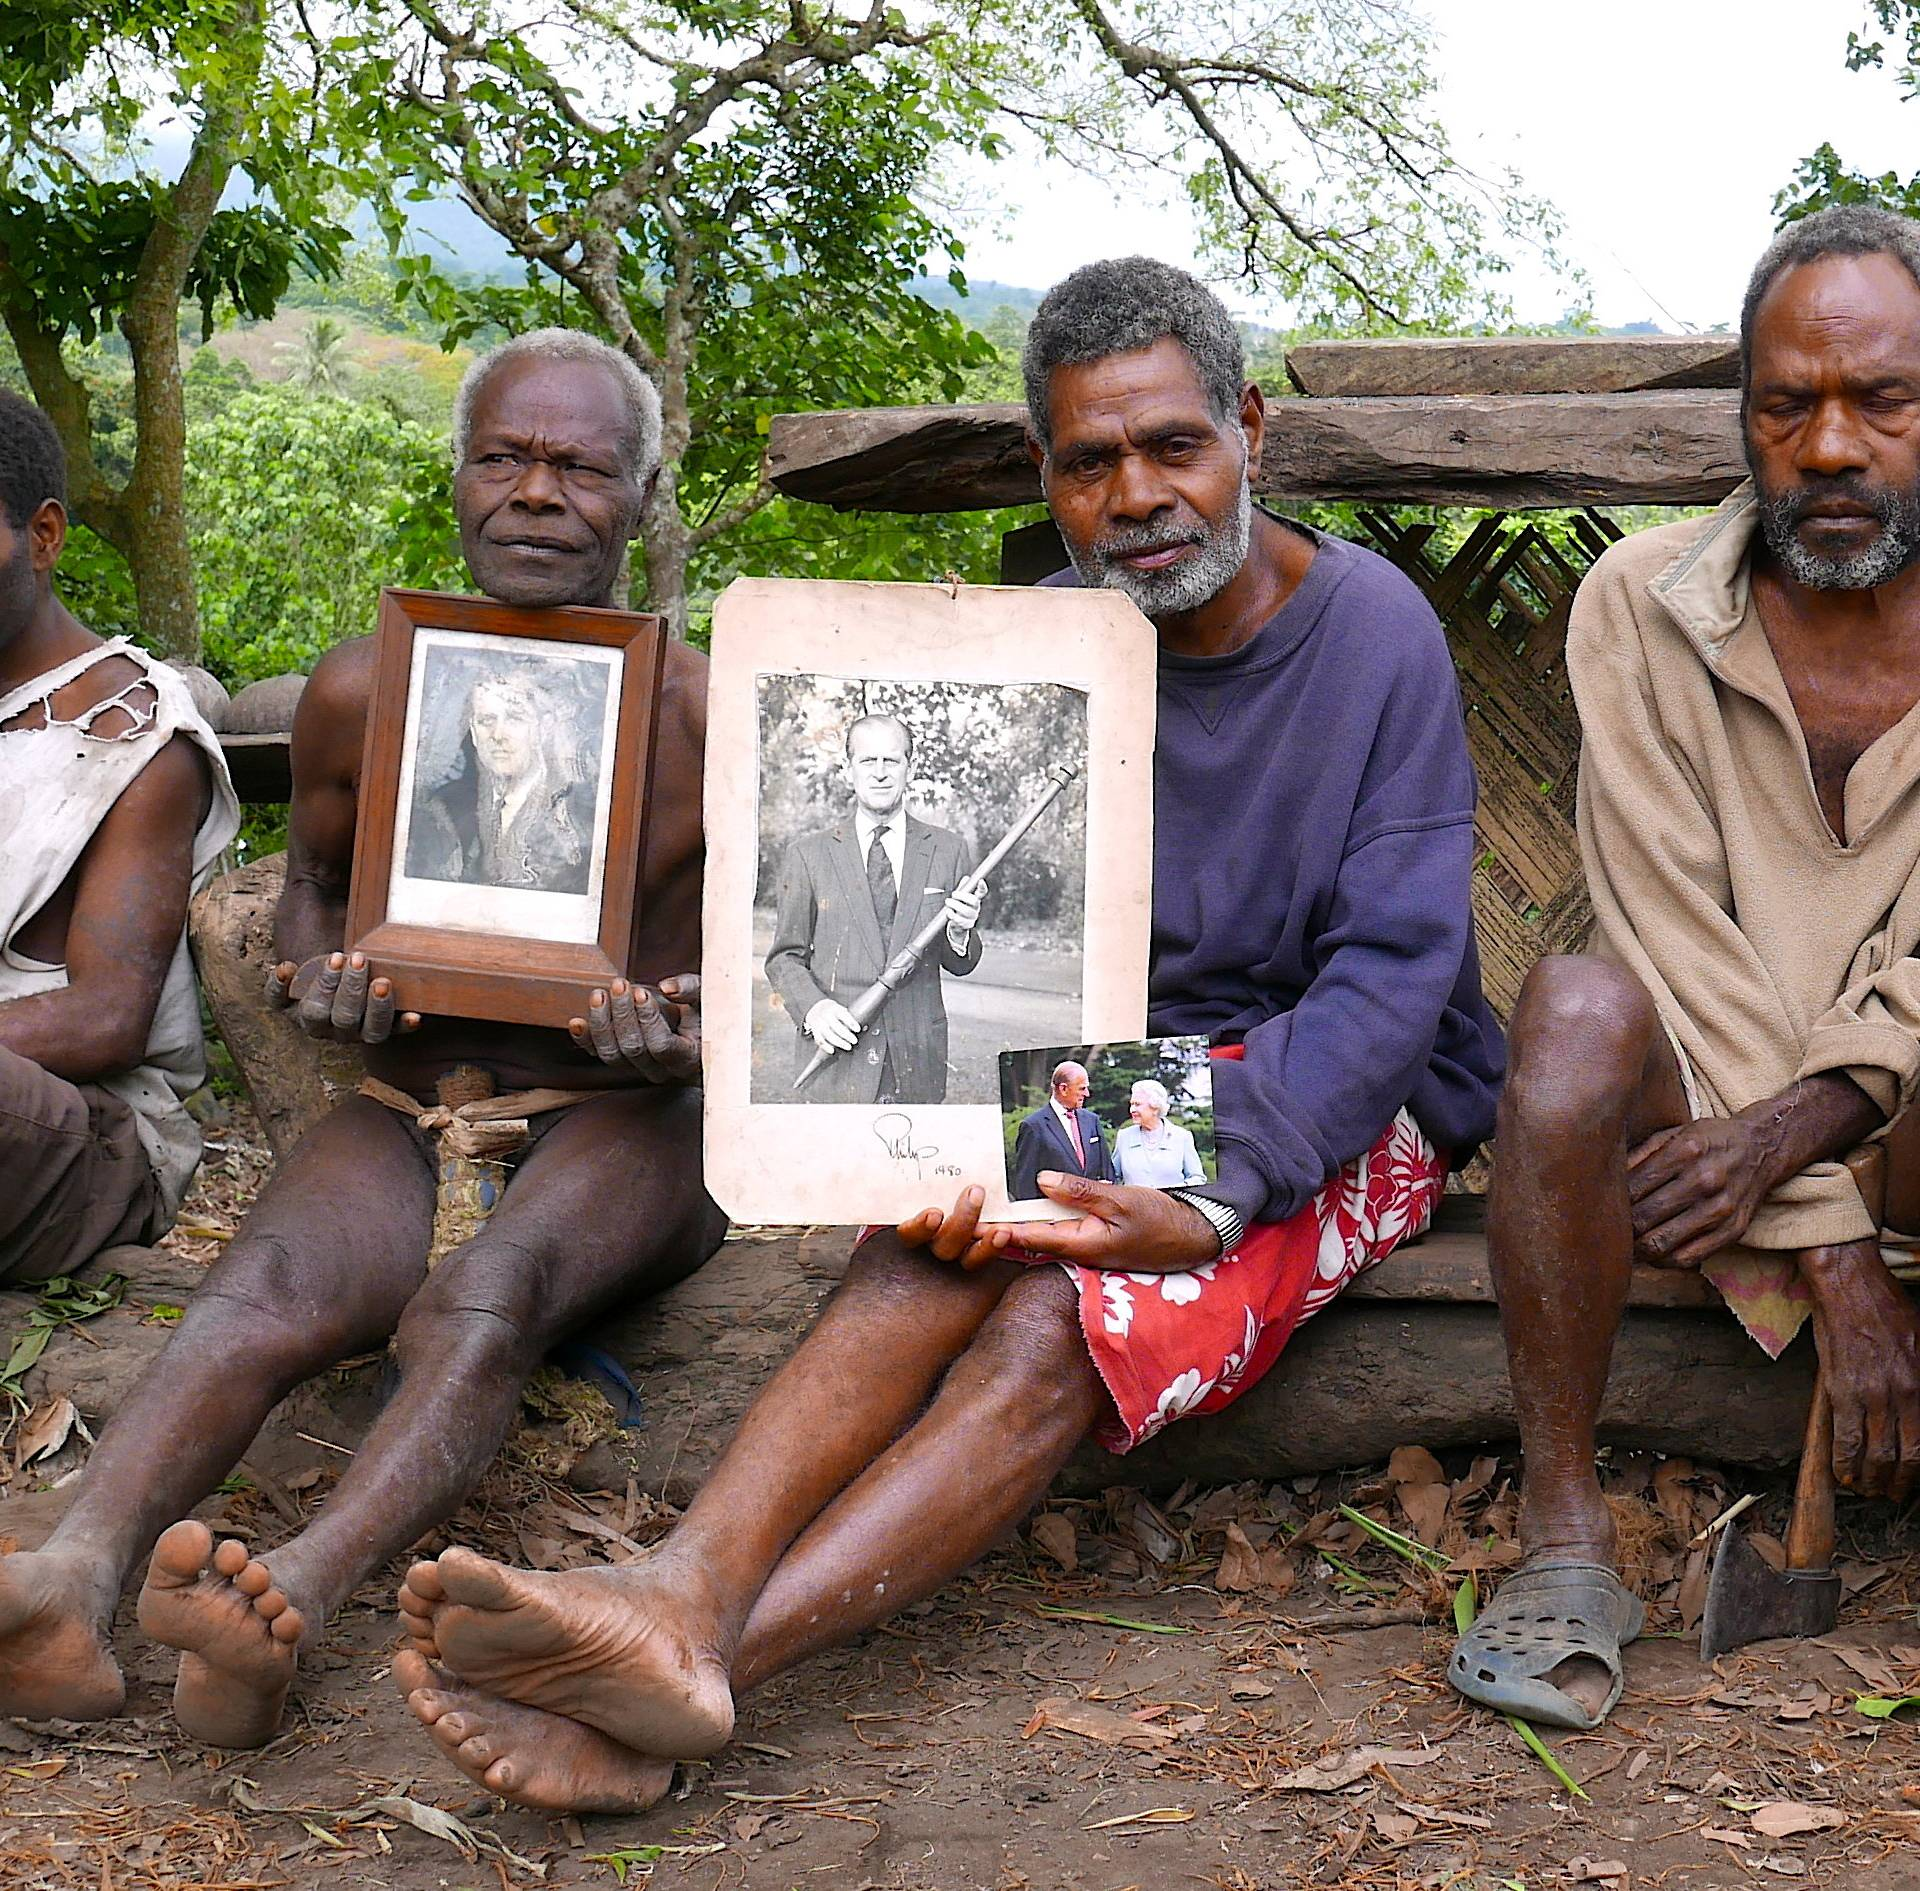 Chief Jack Malia from the Imanourane Tribe holds photographs of Britain's Prince Philip as he sits next to other villagers in the village of Younanen on Tanna Island in the Pacific island nation of Vanuatu